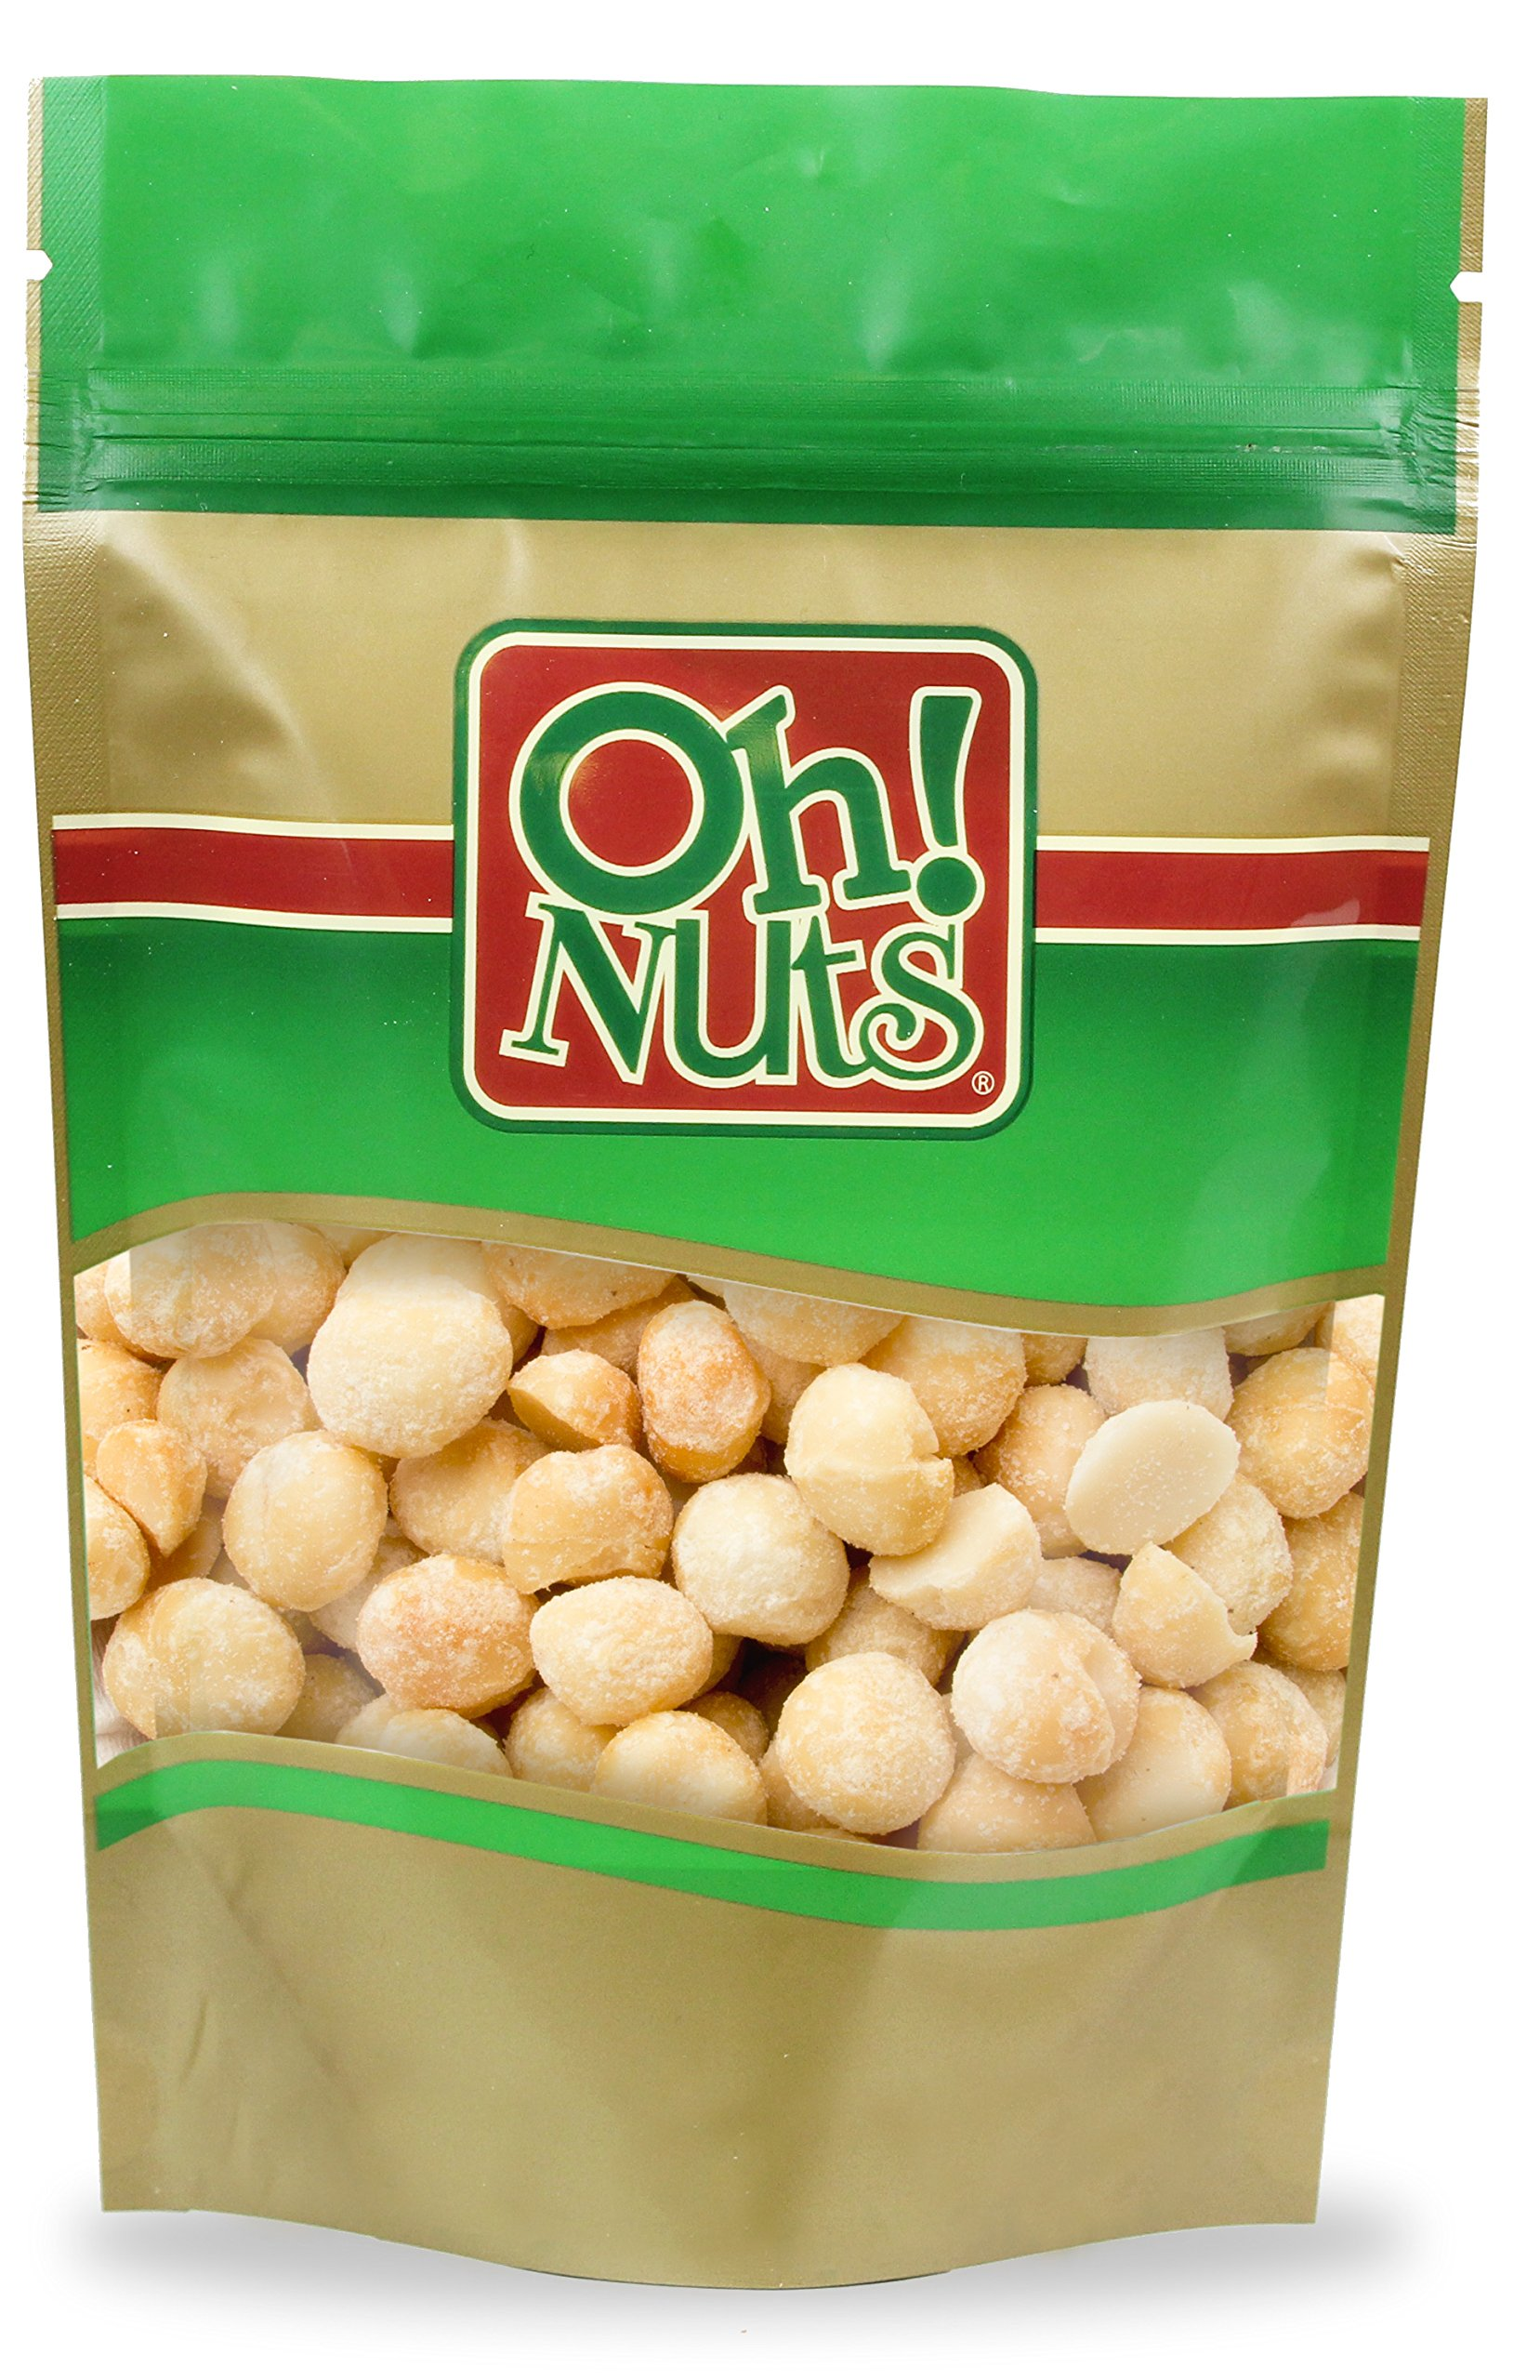 Macadamia Nuts Unsalted Dry Roasted, Large Macadamias Oven Roasted with NO OIL and NO SALT - Oh! Nuts (1 LB Roasted Unsalted Macadamia Nuts) by Oh! Nuts® (Image #1)